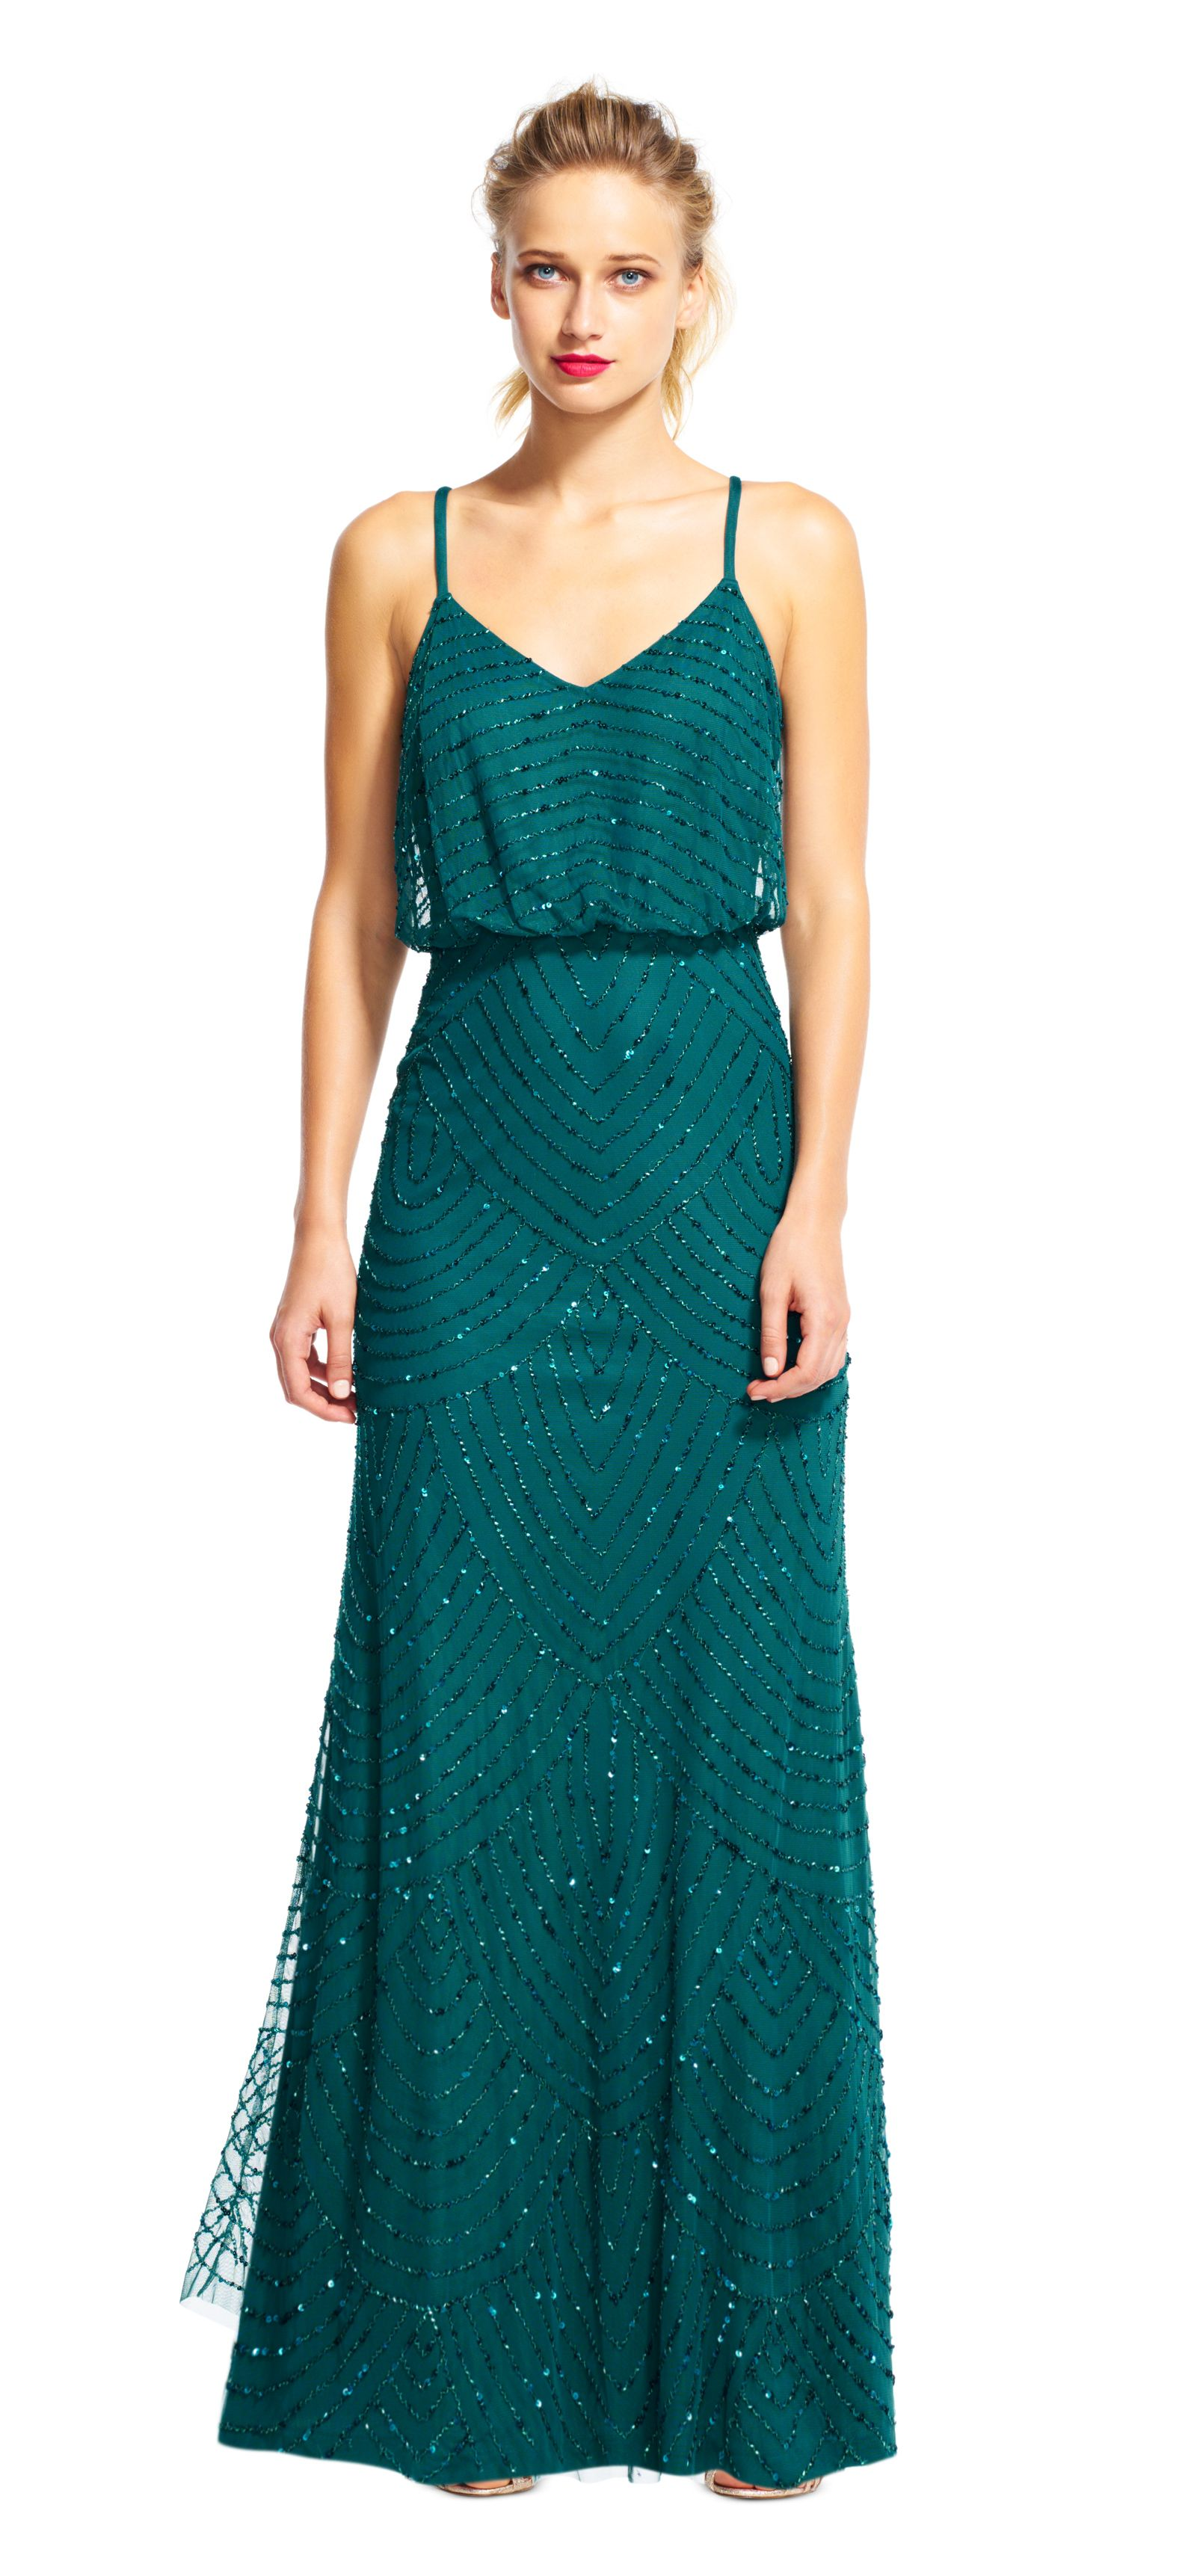 Adrianna Papell hunter green art deco blouson beaded gown | A ...